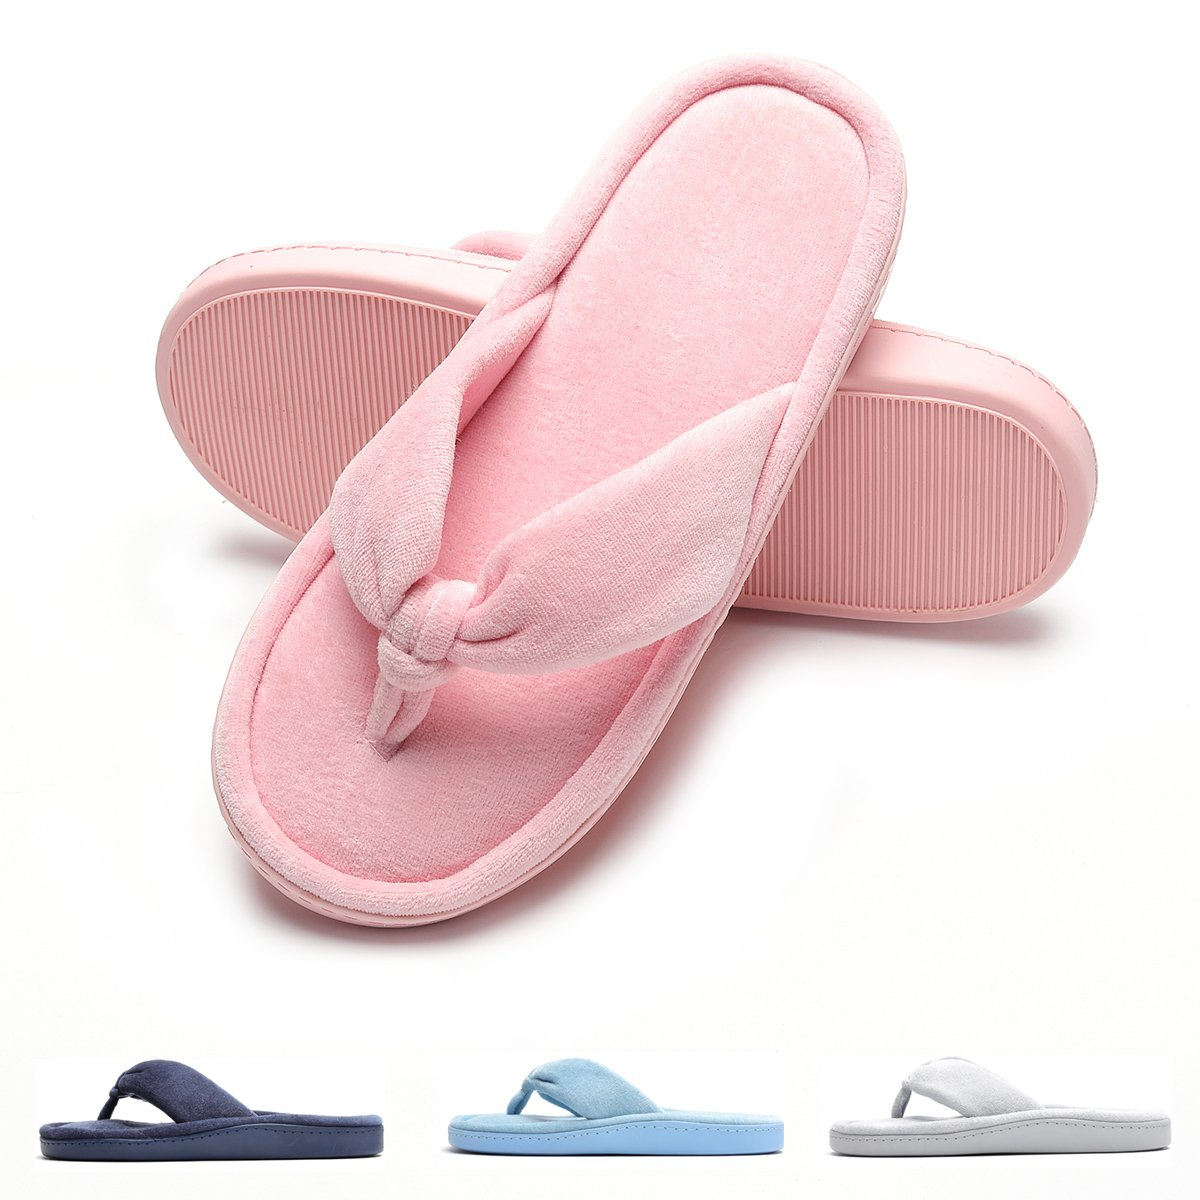 Warm Soft Fashion Slippers for Women Comfy Flat Slide Slippers for Bedroom Pink M